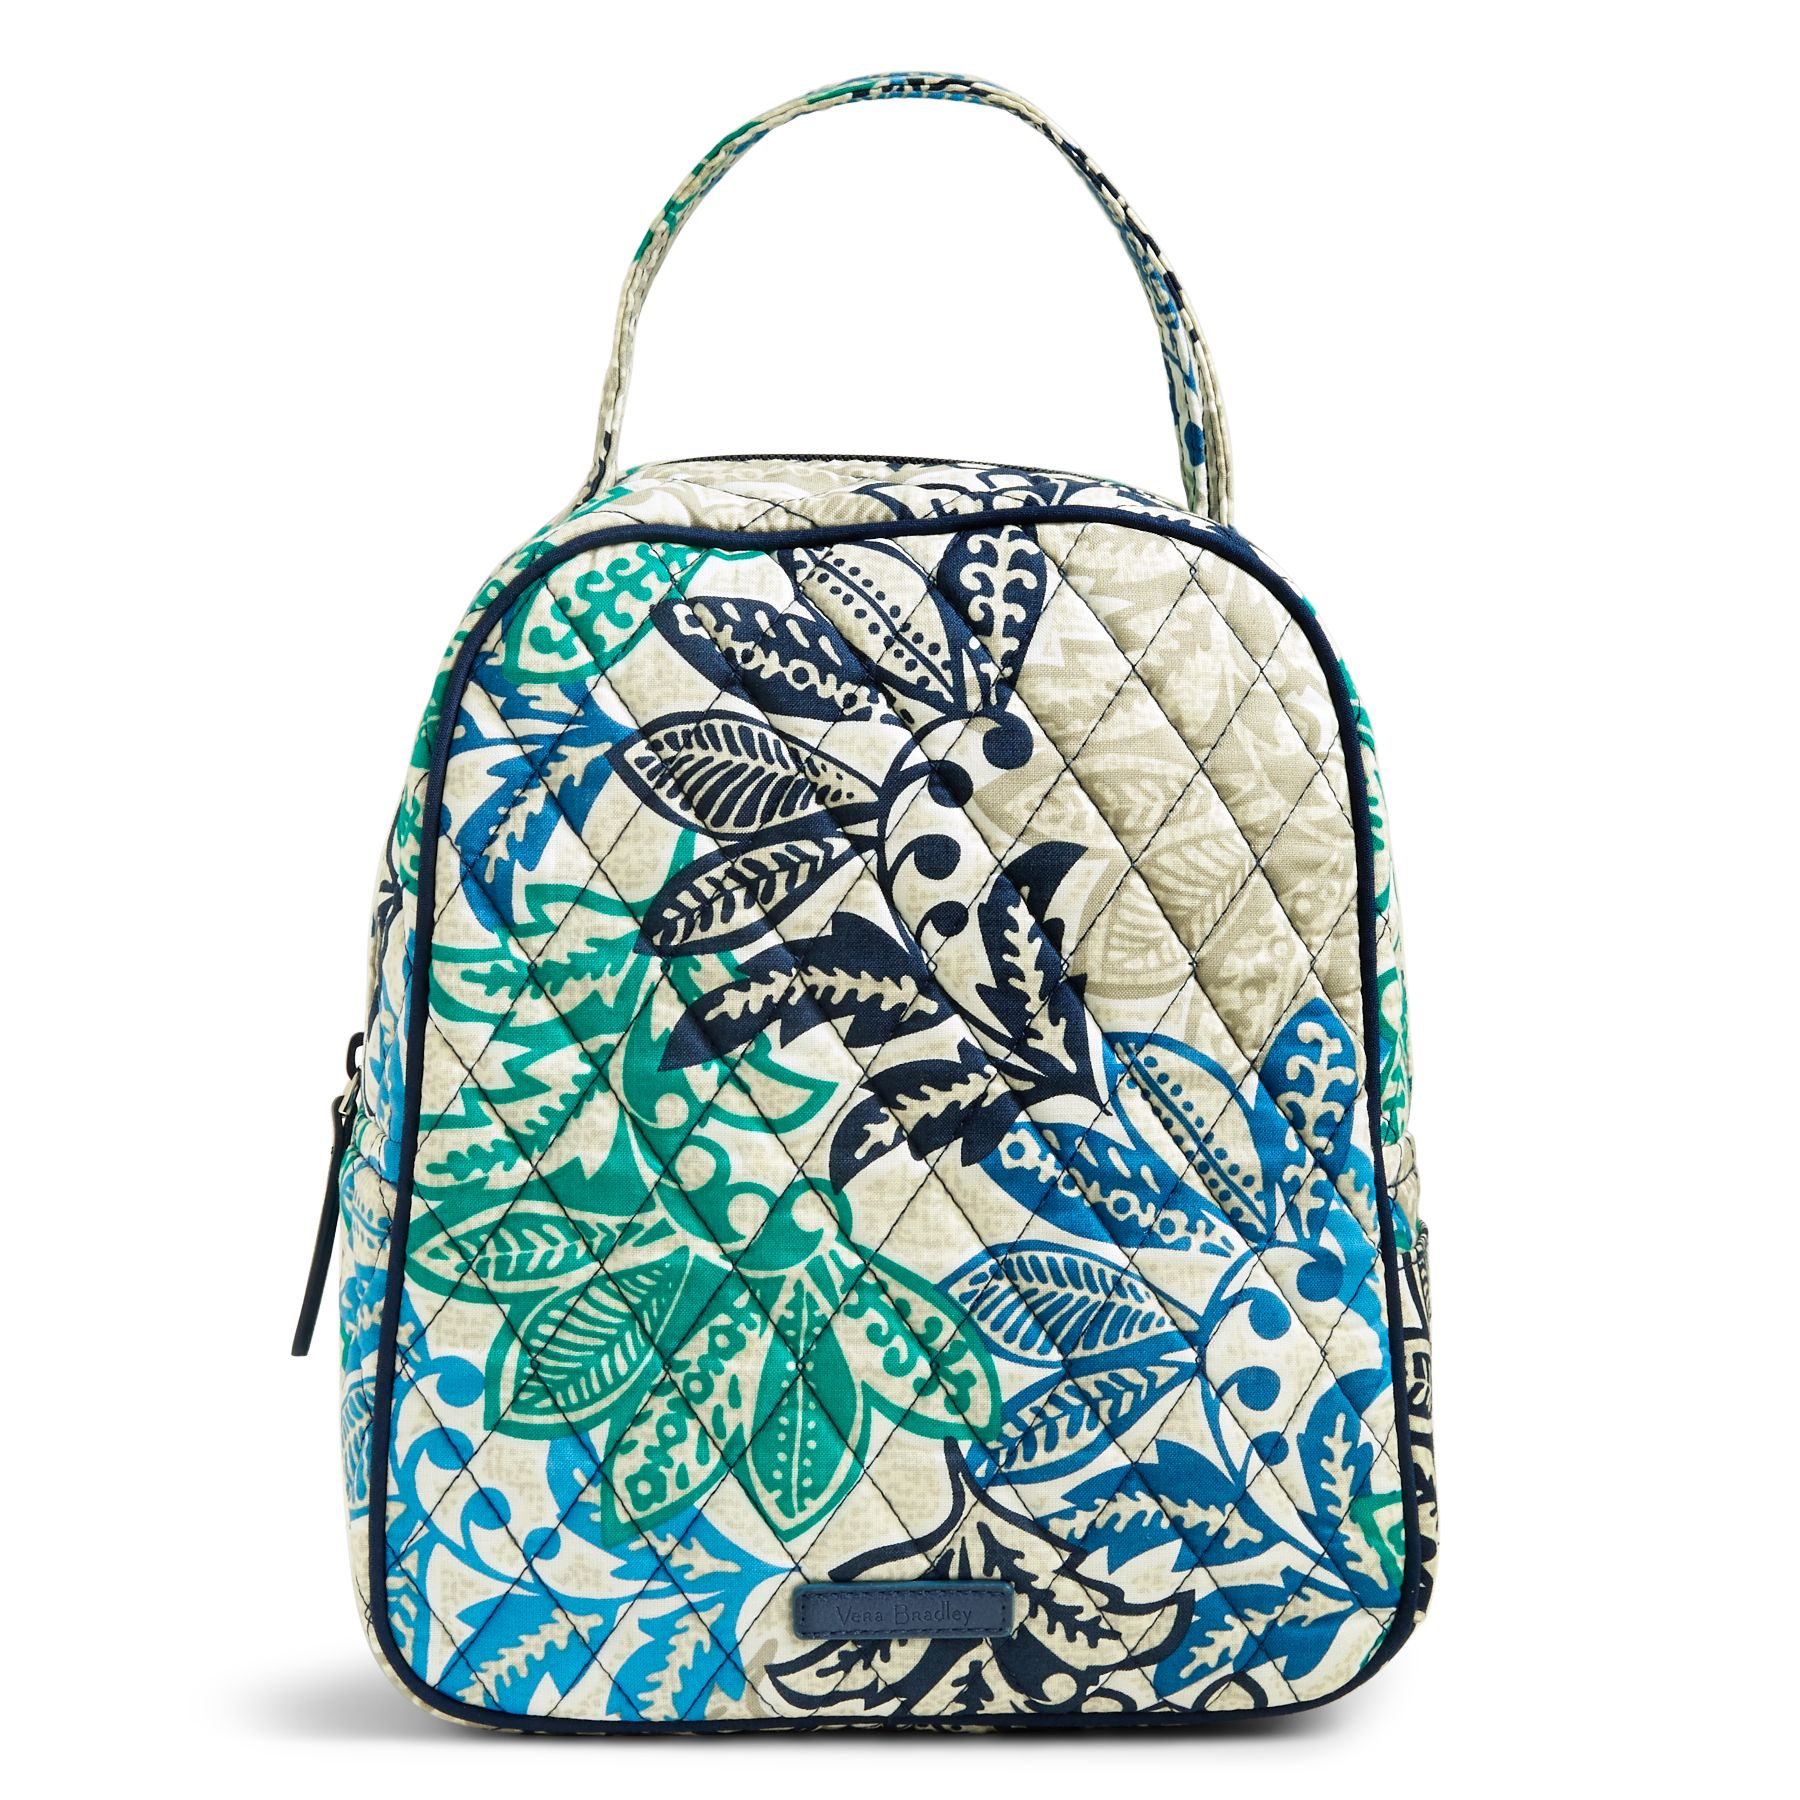 f604e00571 UPC 886003440995. ZOOM. UPC 886003440995 has following Product Name  Variations  Vera Bradley® Lunch Bunch ...